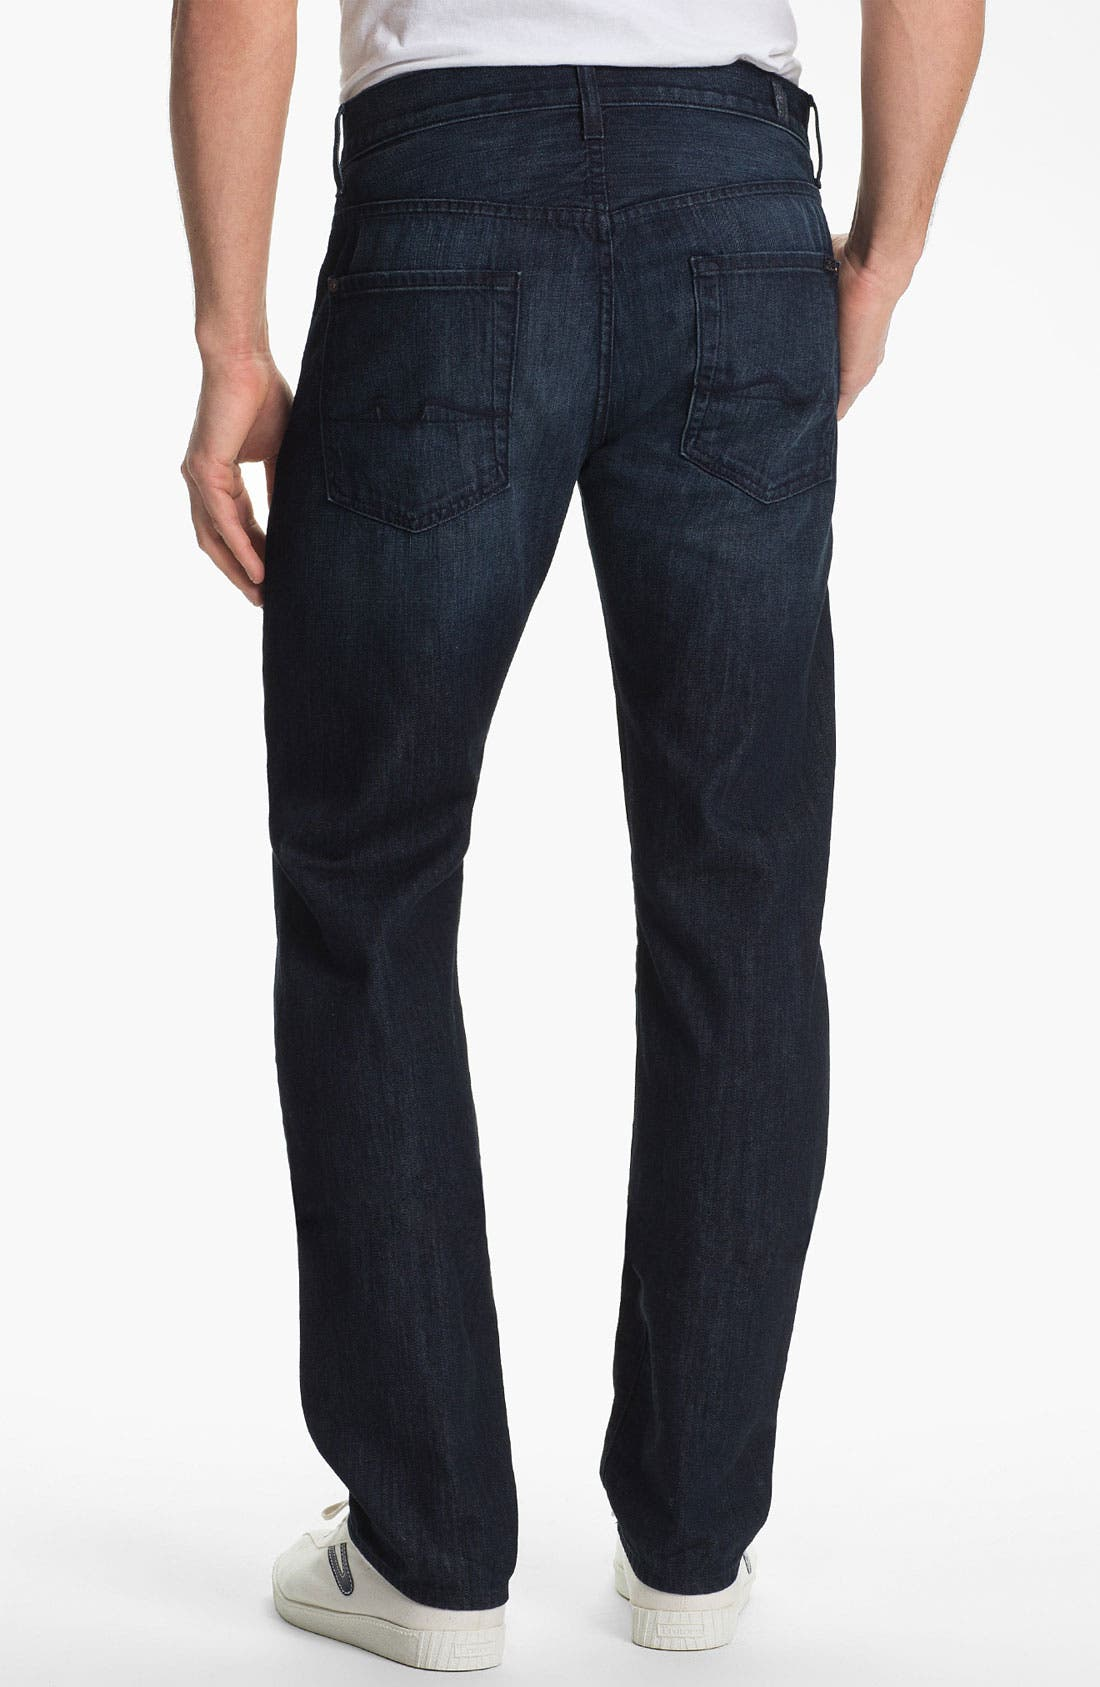 Alternate Image 1 Selected - 7 For All Mankind® 'Slimmy' Slim Straight Leg Jeans (Manhattan Bay)